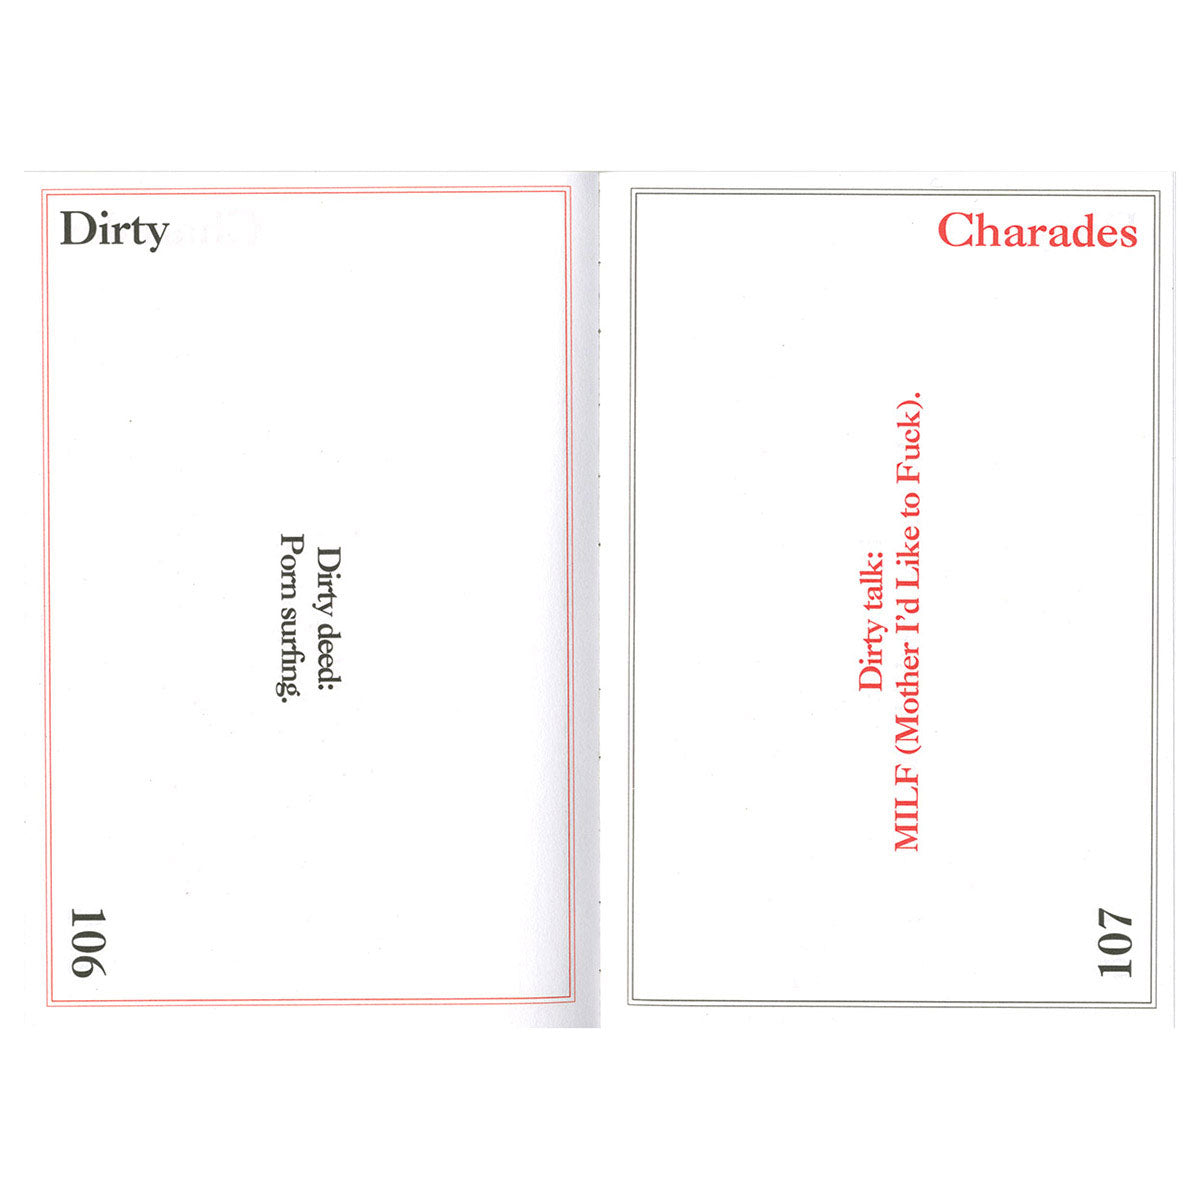 Dirty Charades - The Book, the Game, the Fun - Nicotext